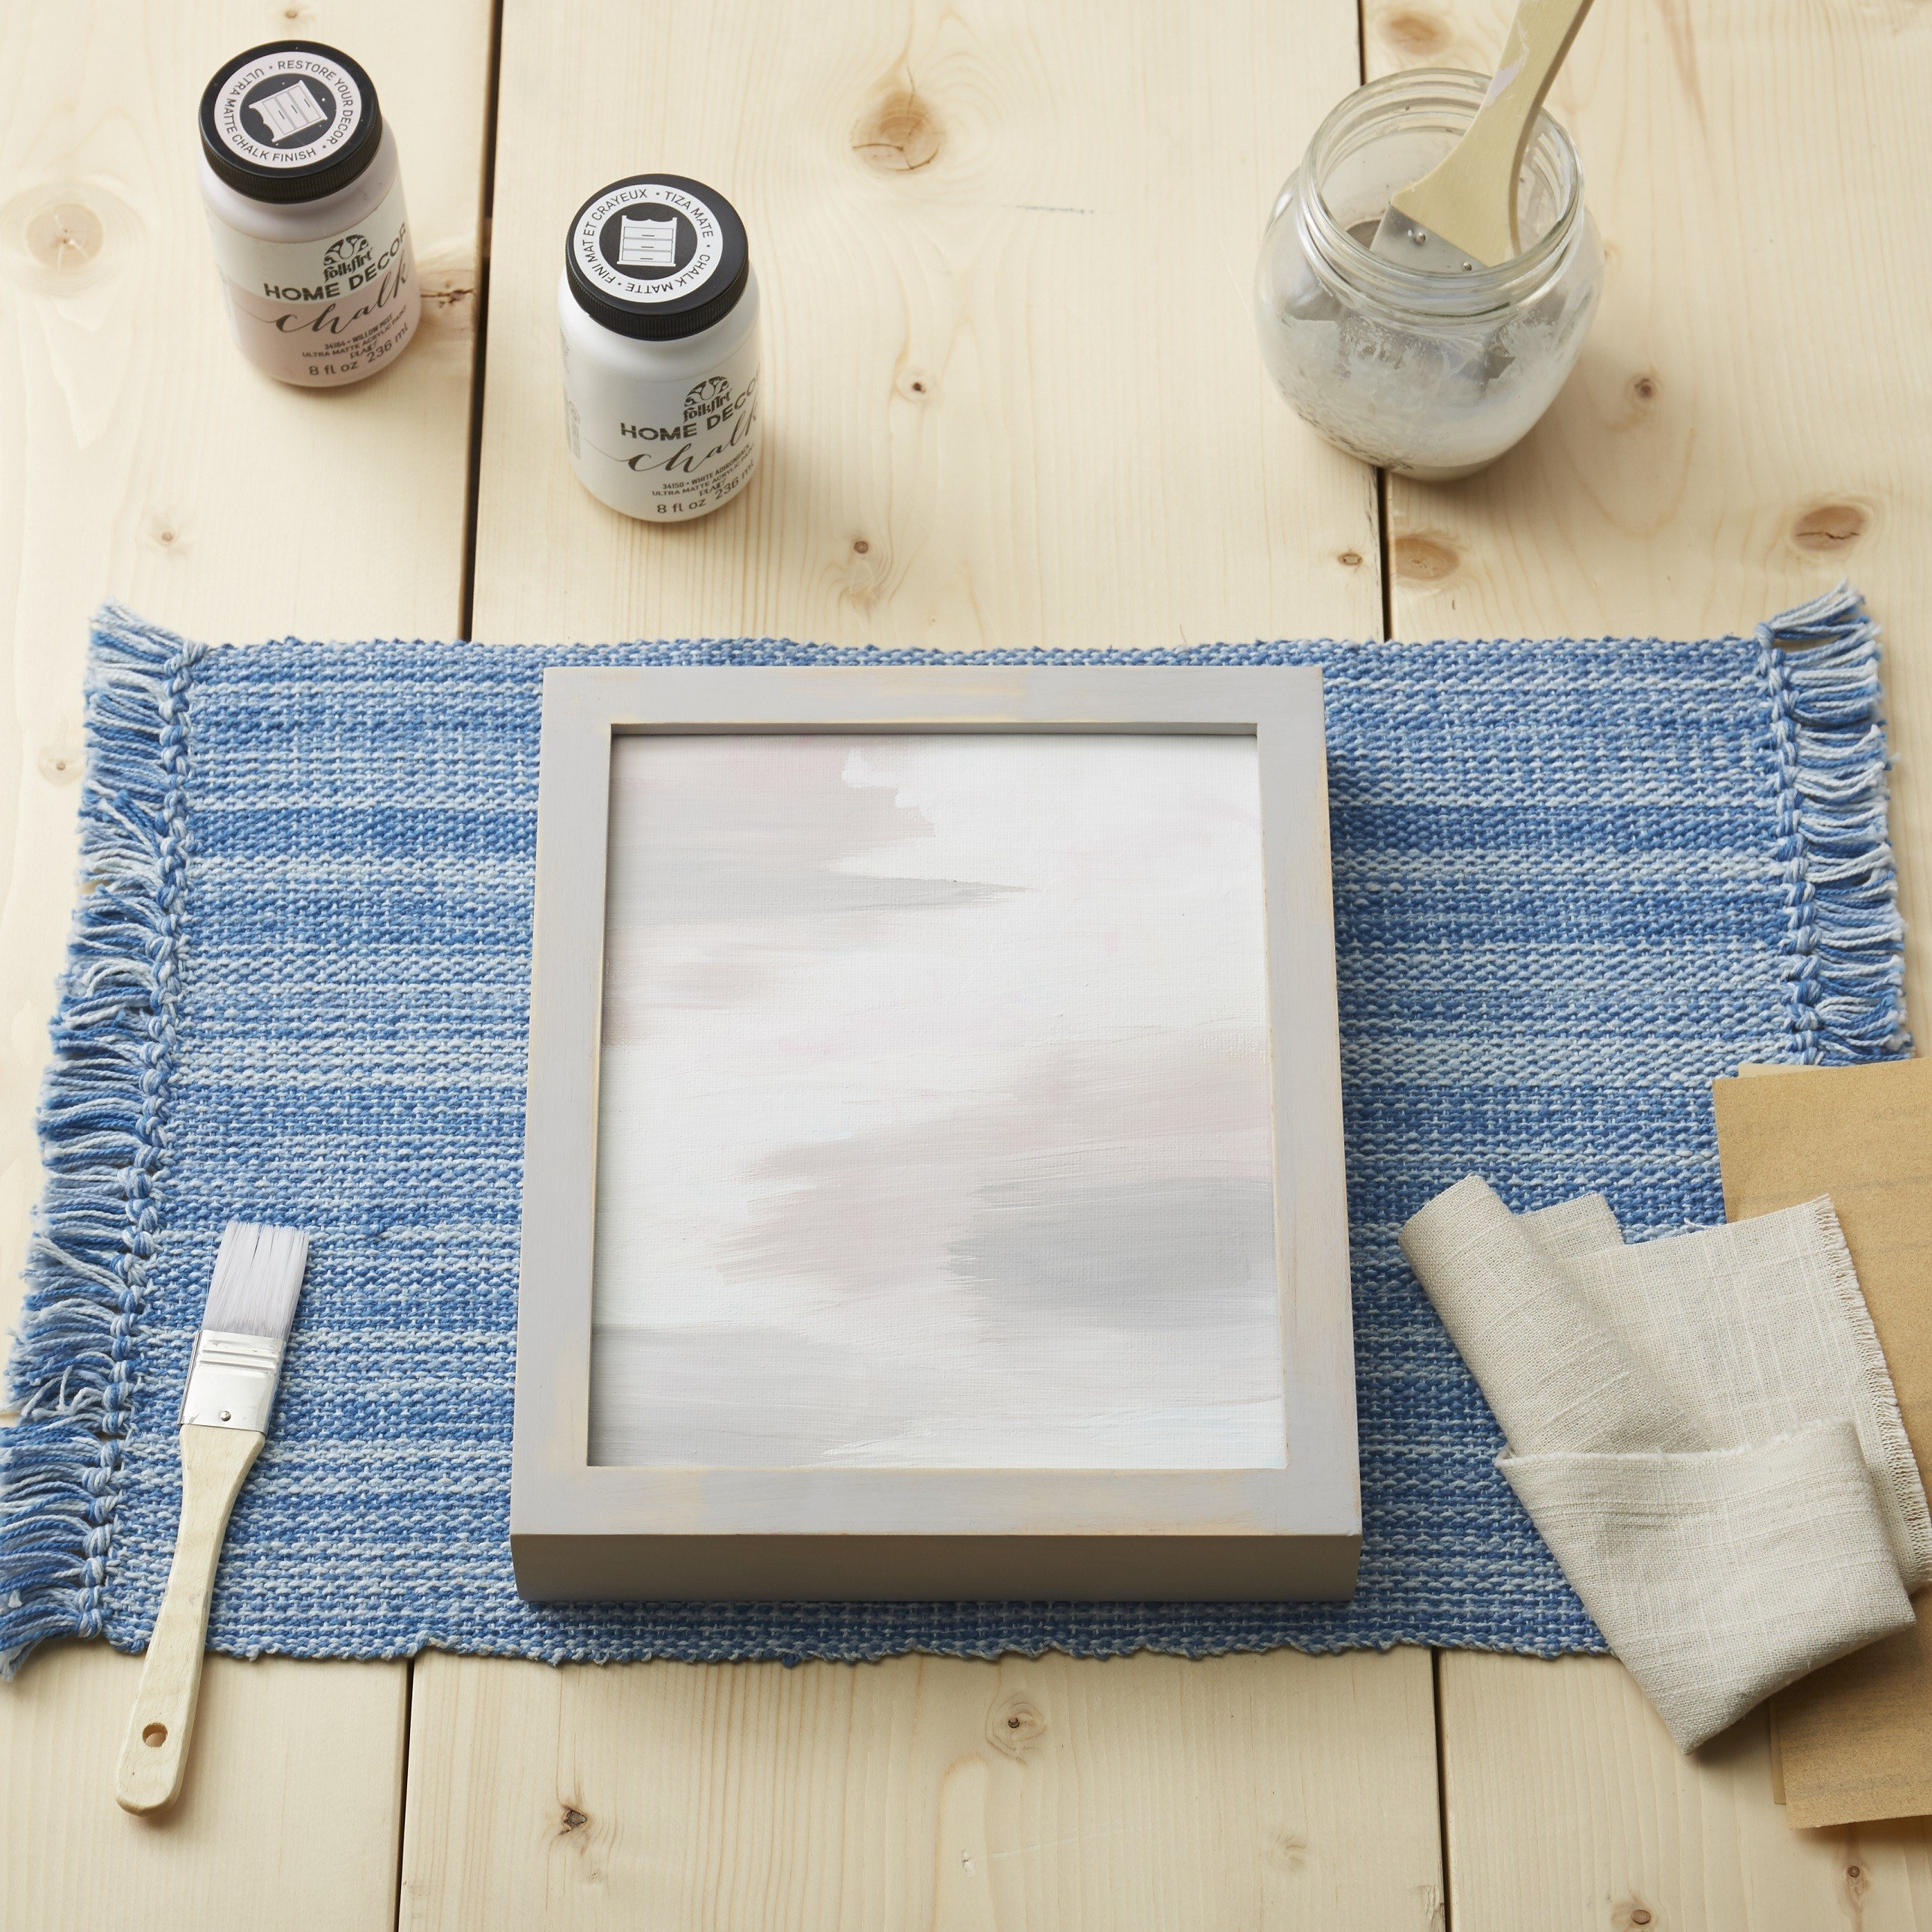 How-To Create a Rustic Farmhouse Frame | The Find by zulily